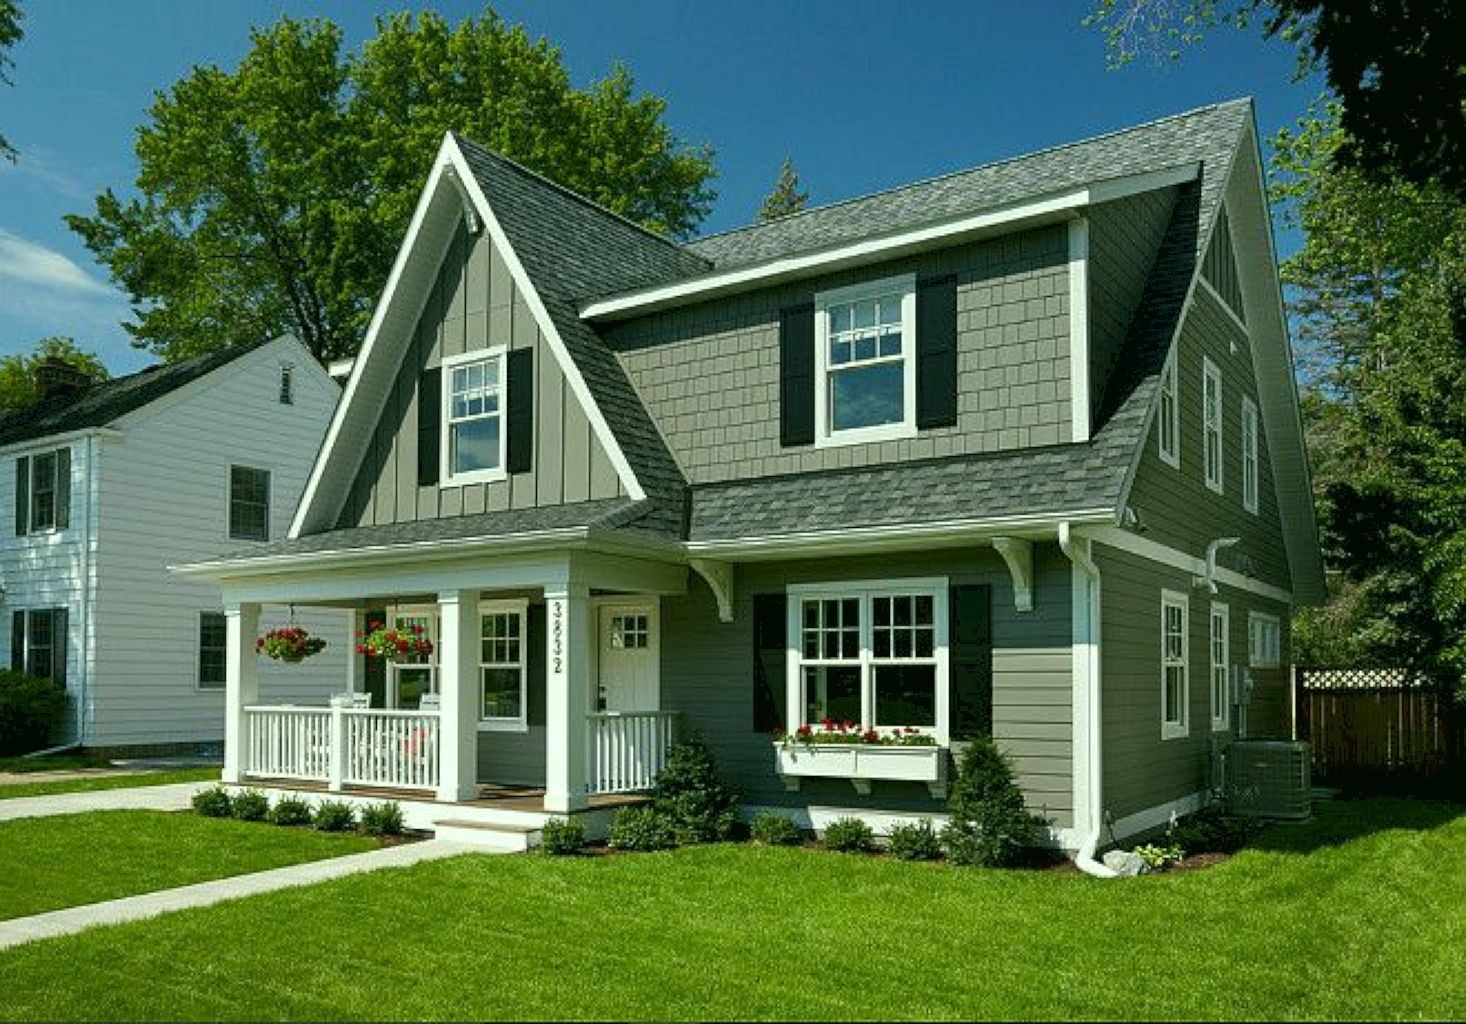 cape cod house exterior design. 50 Traditional Cape Cod House Exterior Ideas  Roomaniac com design